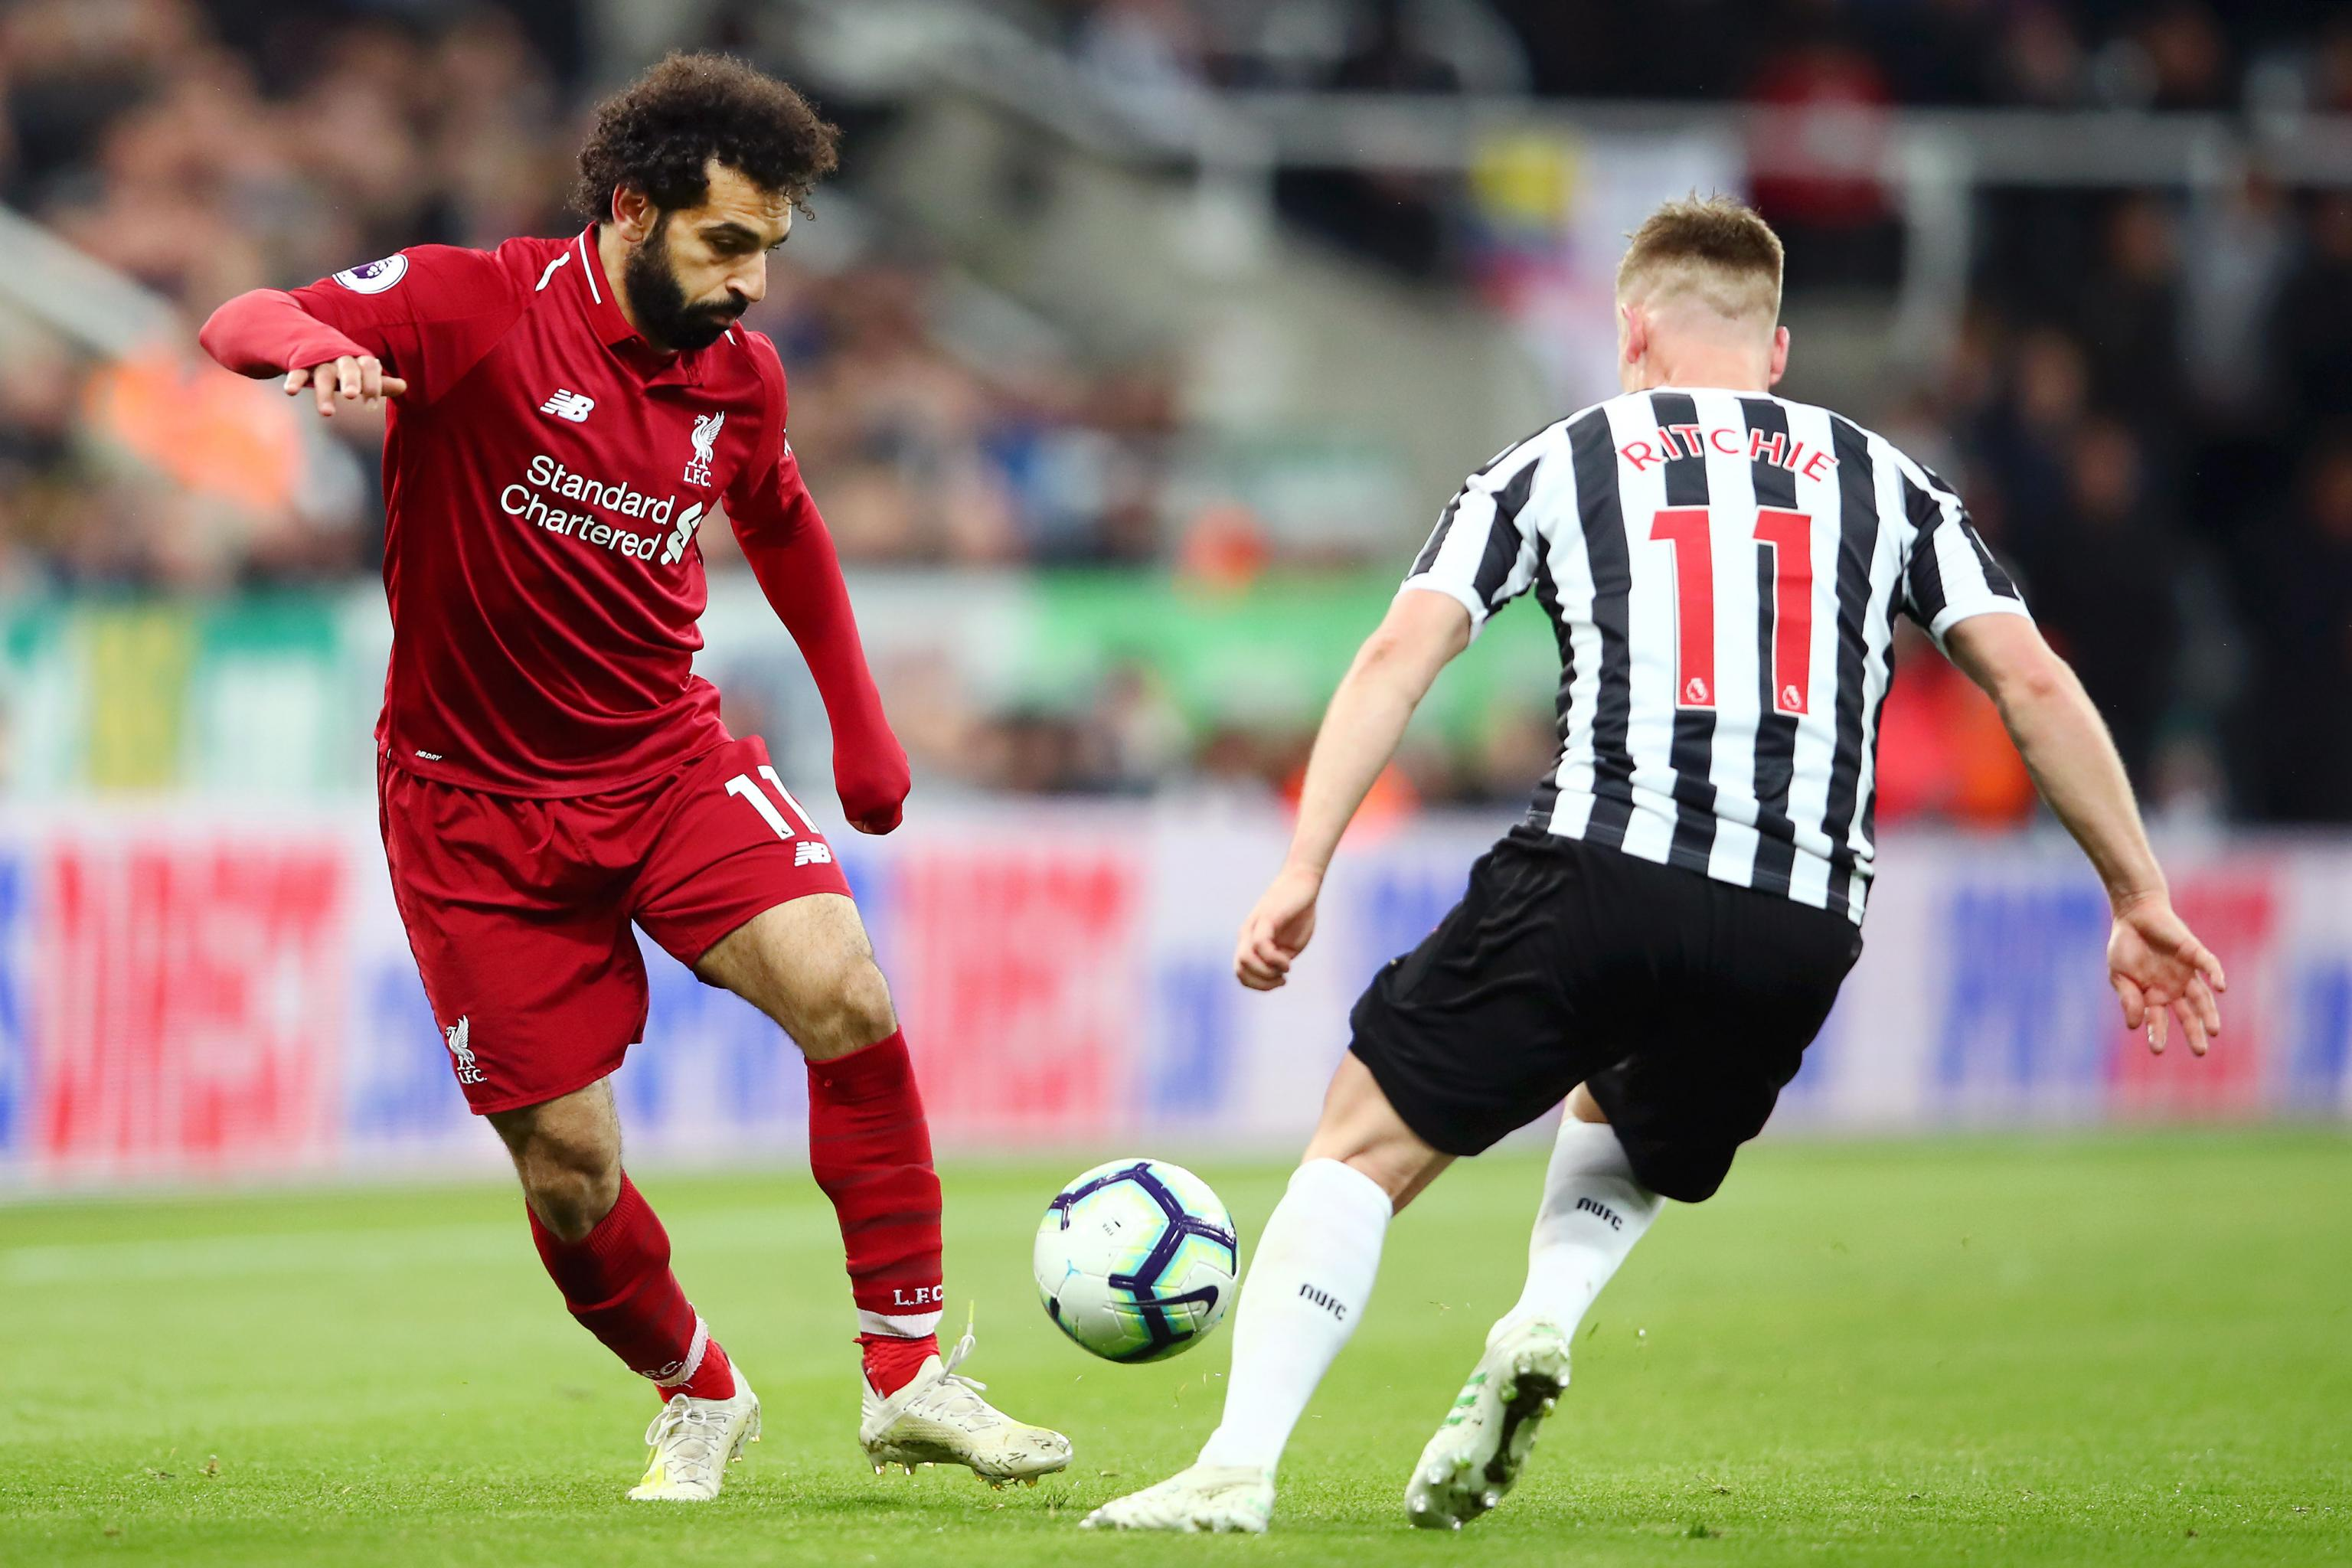 EPL Results Week 37: Saturday's 2019 Premier League Scores